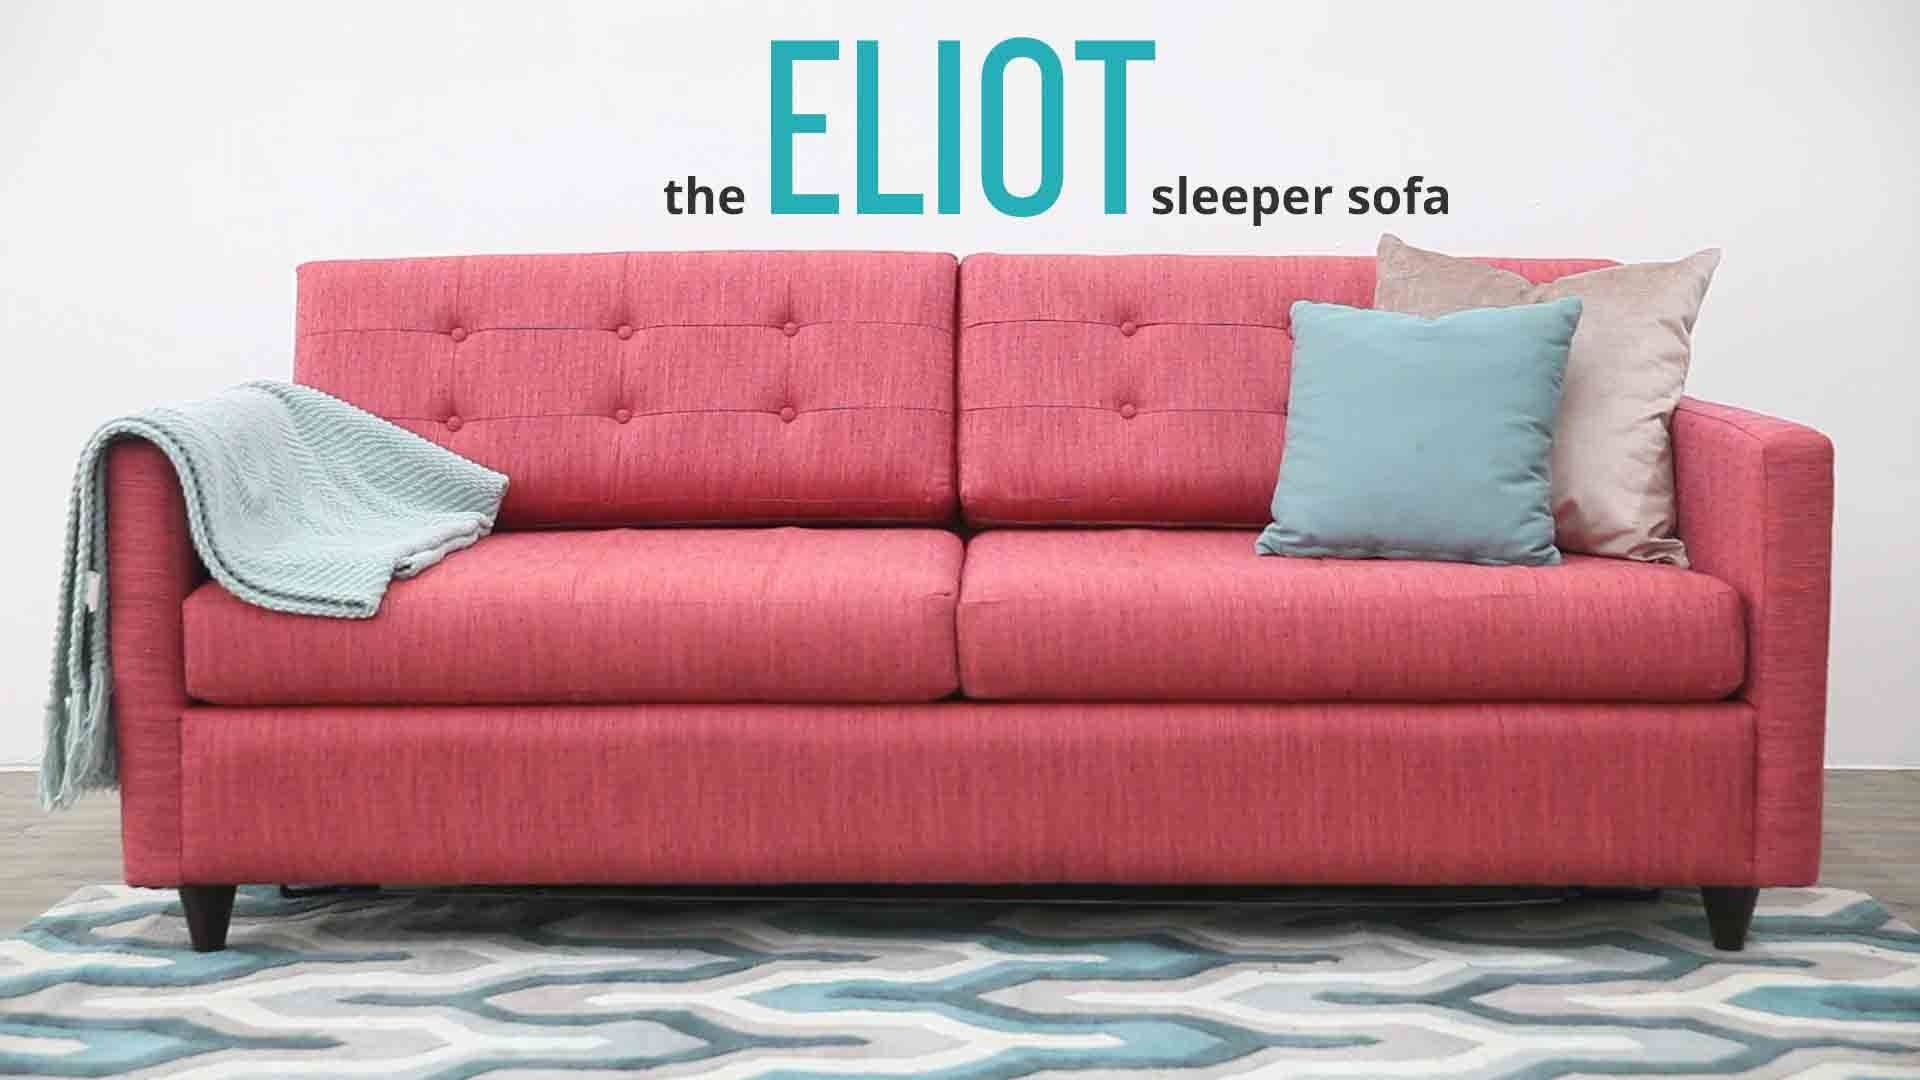 Eliot Sleeper Sofa | Joybird pertaining to Elliott Sofa (Image 7 of 30)